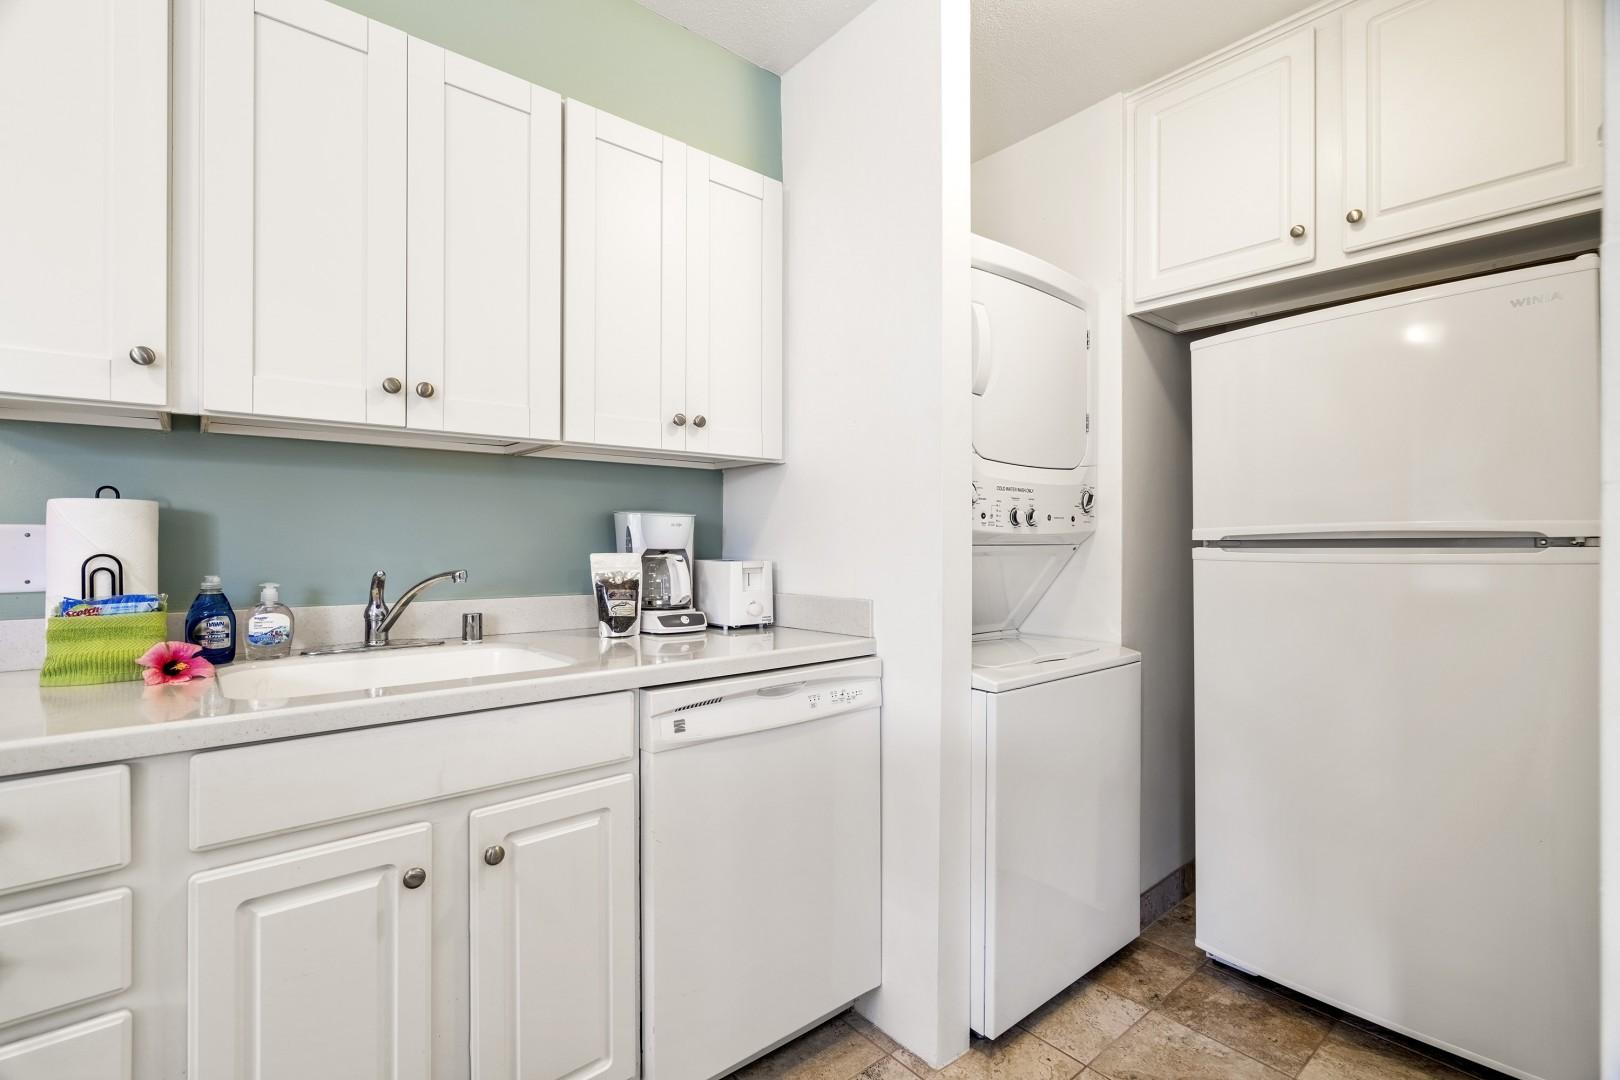 The unit is also equipped with a full sized washer/dryer!